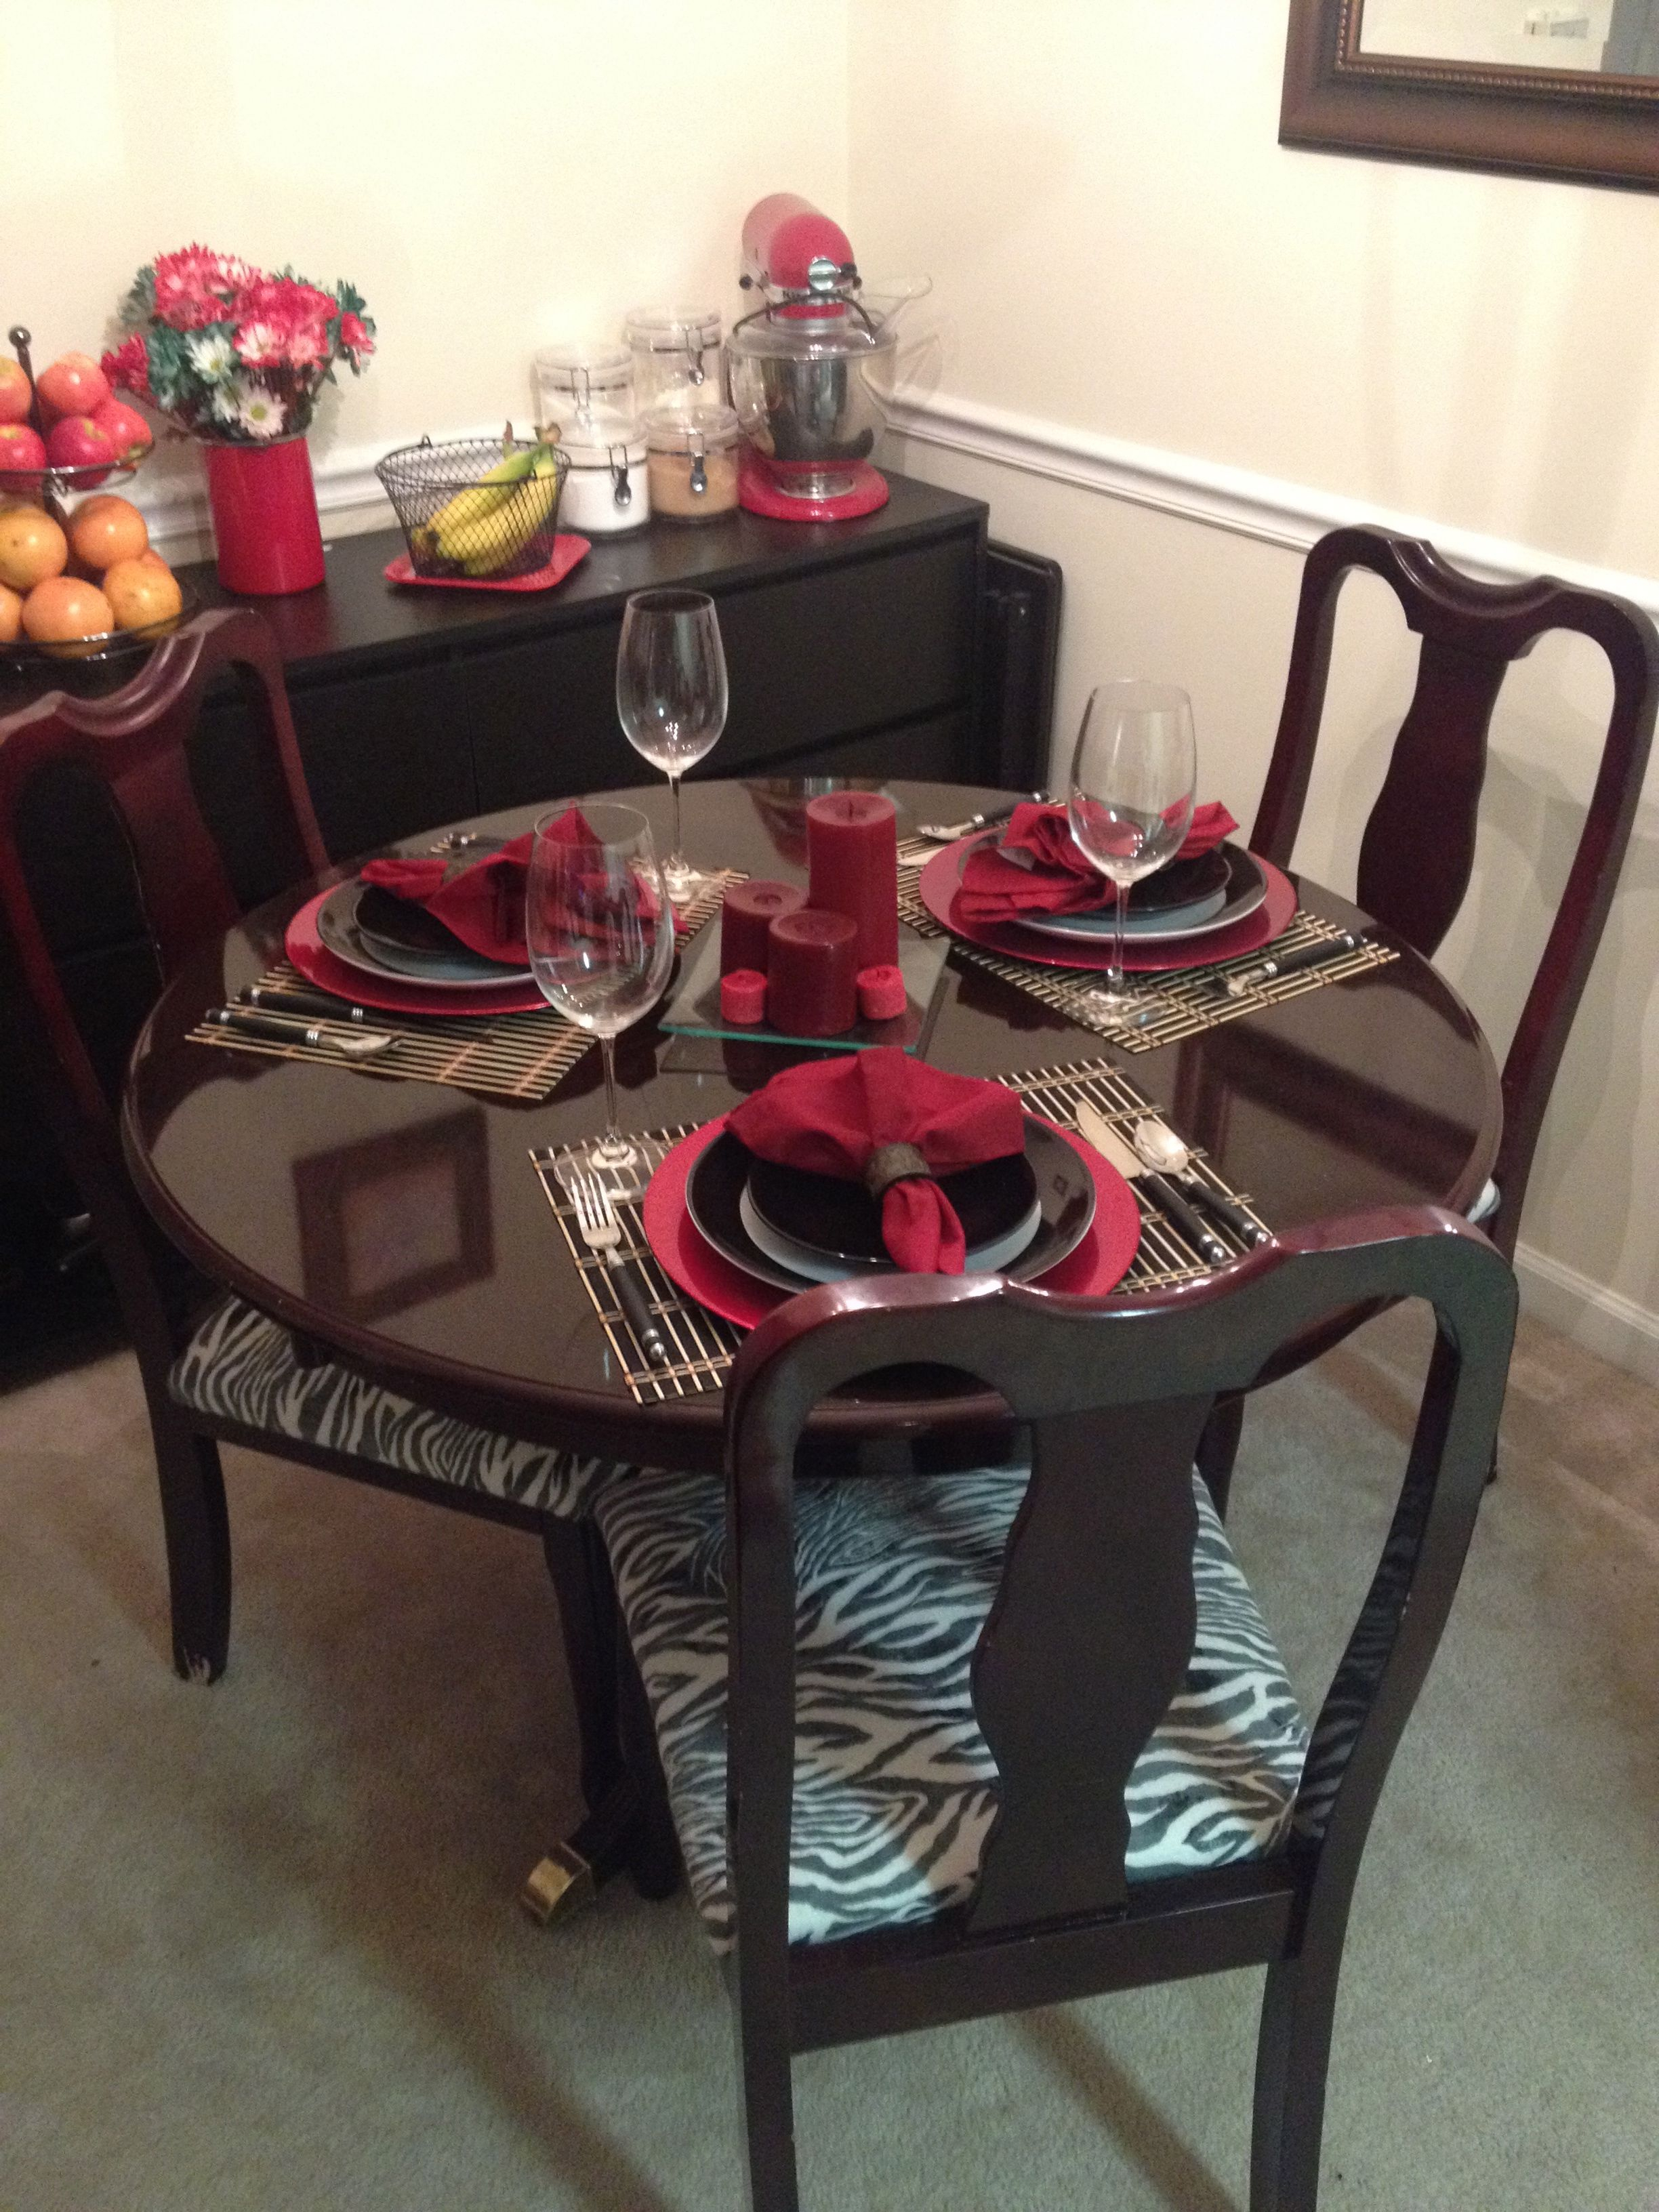 Dining Room Table Set Up With Refurbished Table And for 14 Smart Ways How to Improve Living Room Set Craigslist